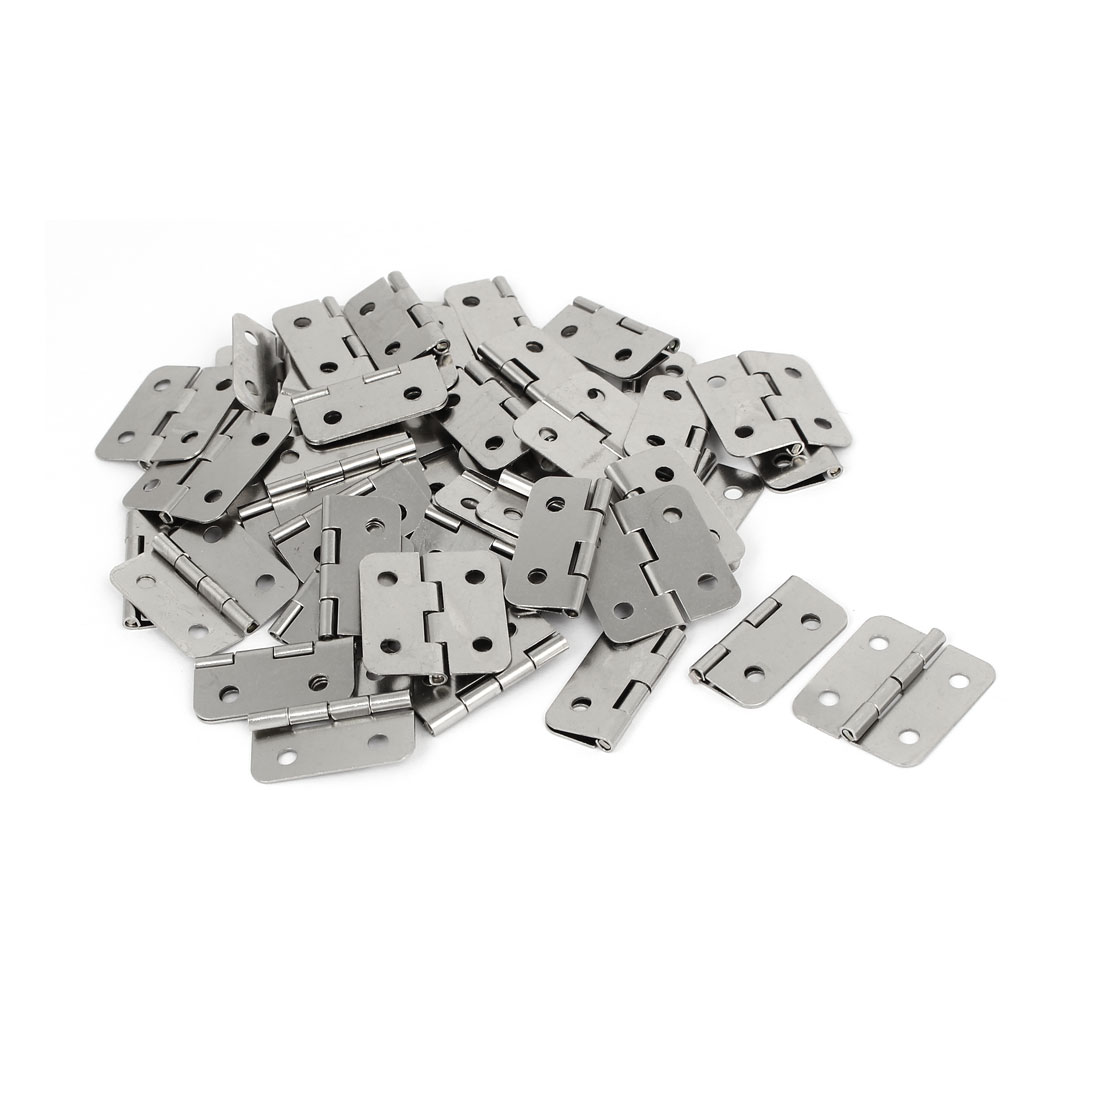 """Wooden Case Cupboard Drawer Metal Butt Hinges Silver Tone 1.2"""" Length 50PCS"""